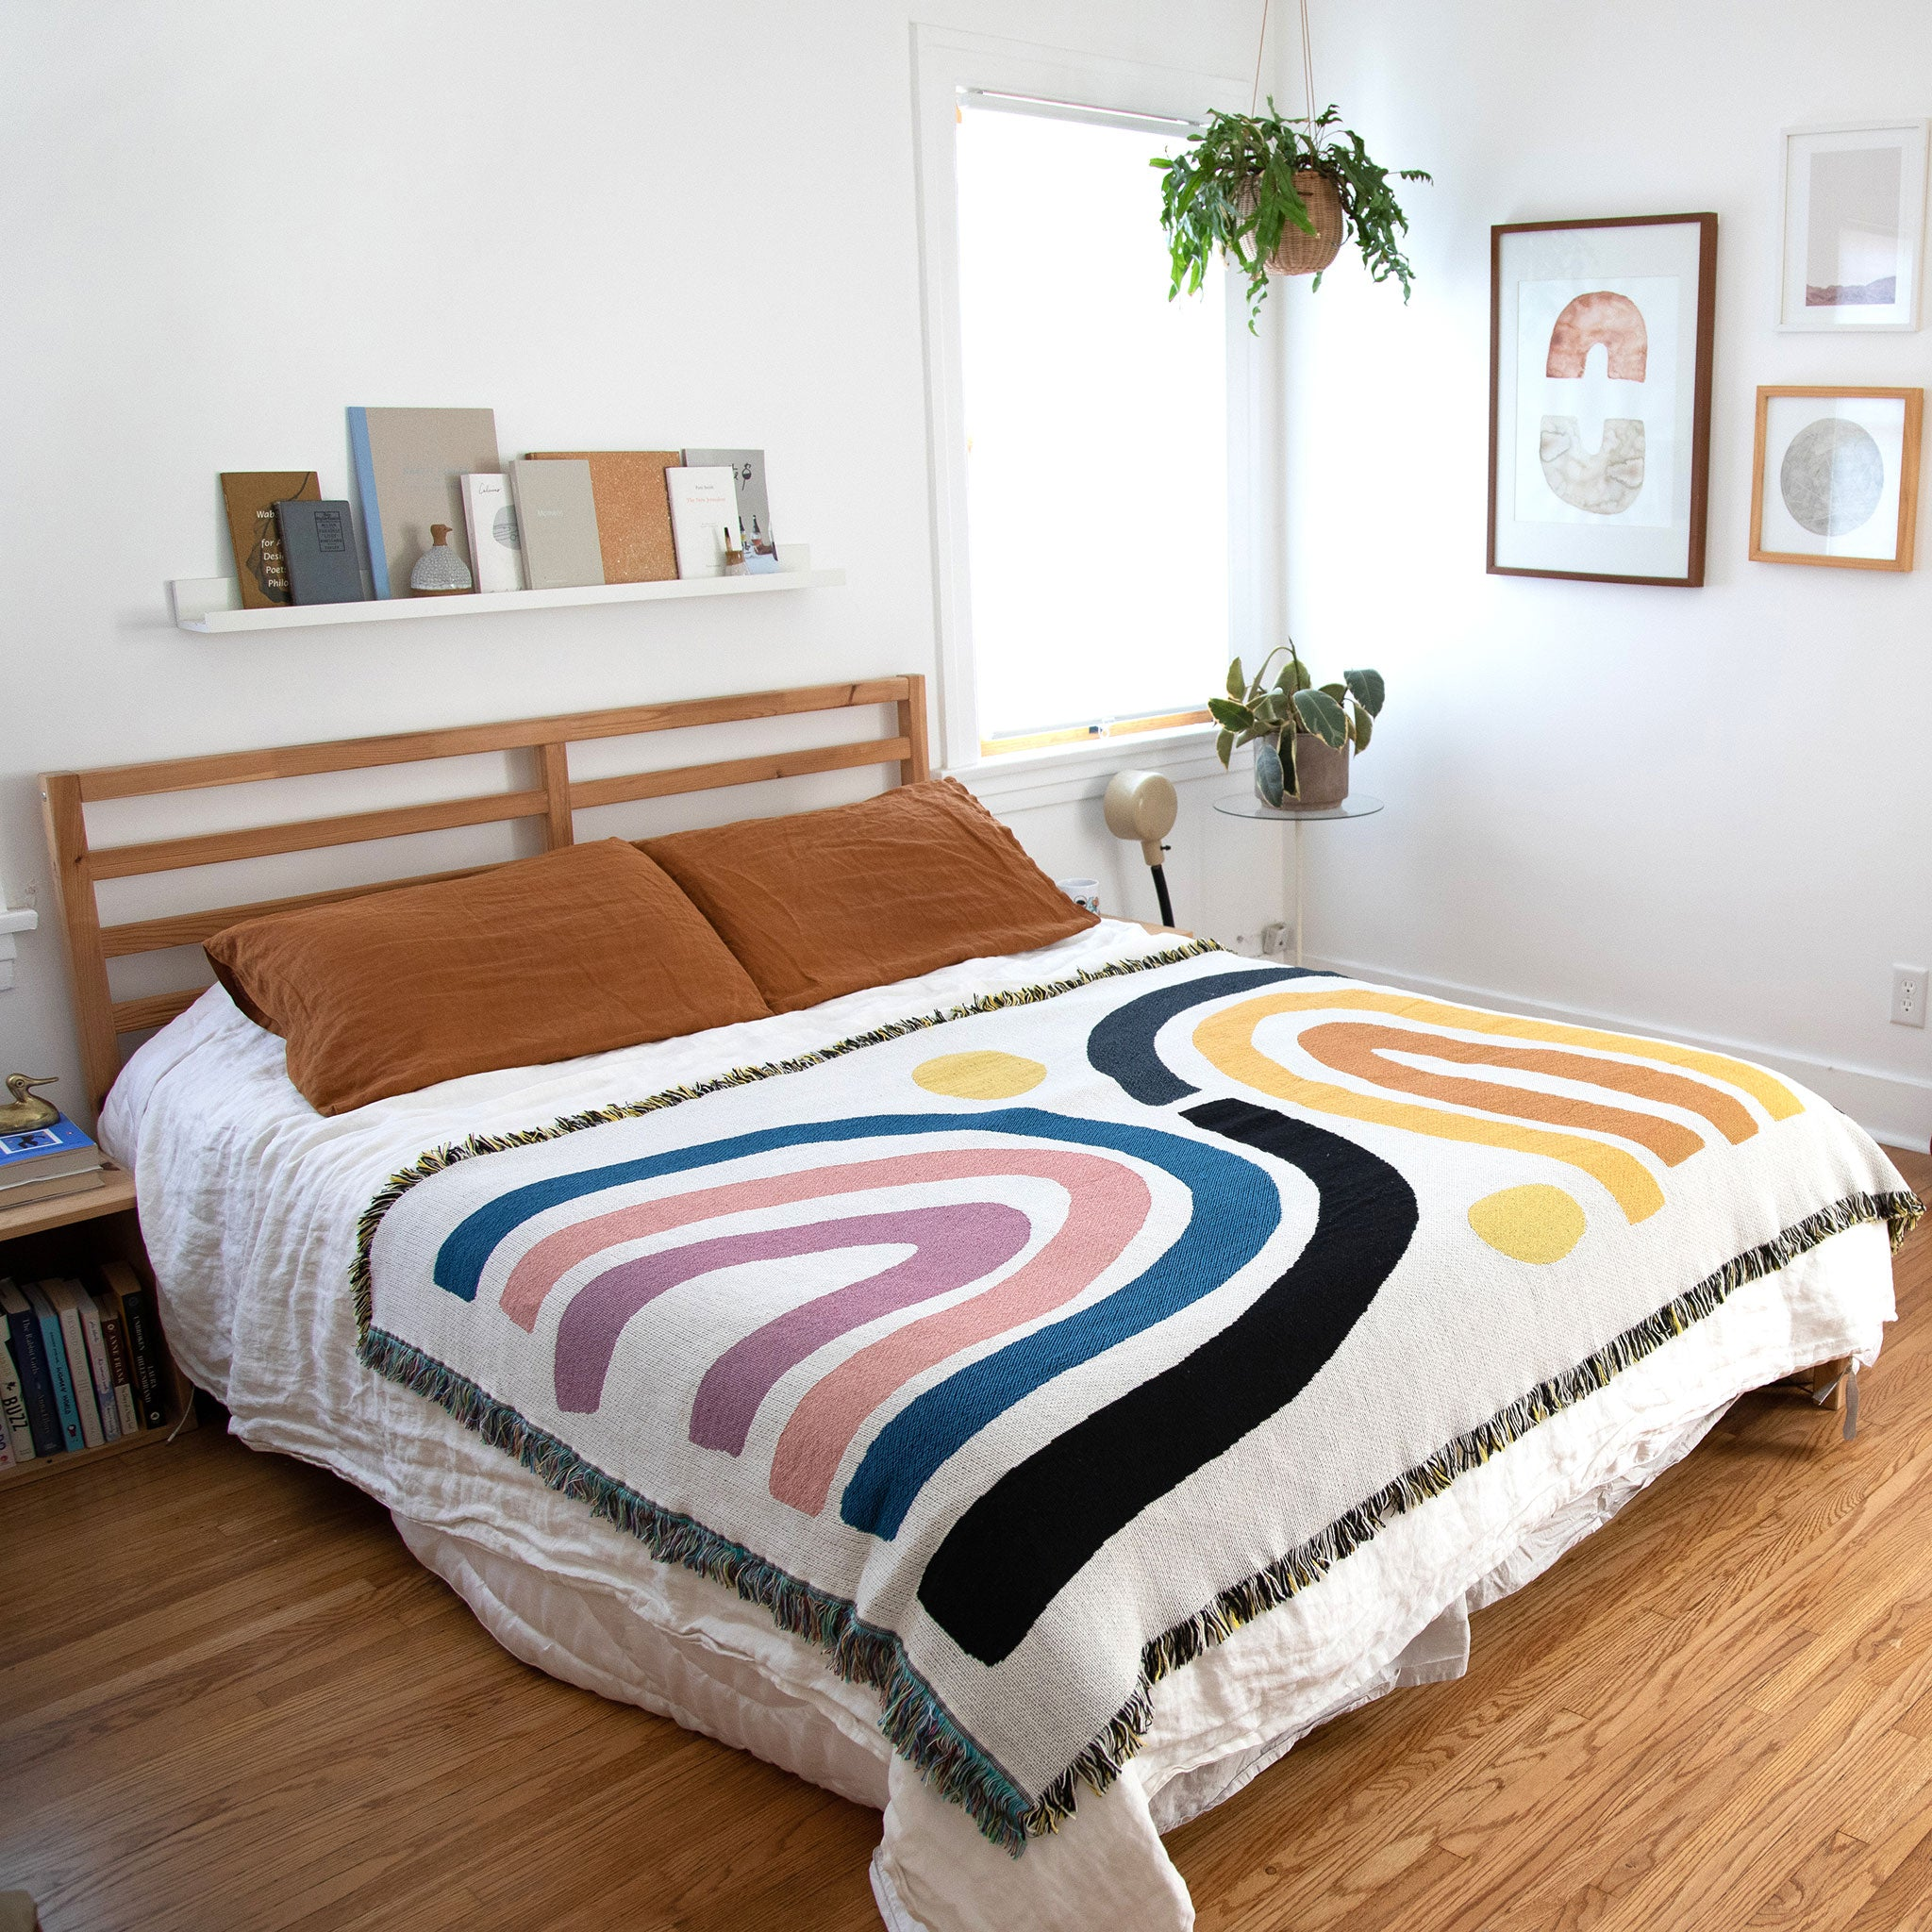 Pastel pink and blue with gold rainbow striped Perry throw by Slowdown Studio on bed in bedroom